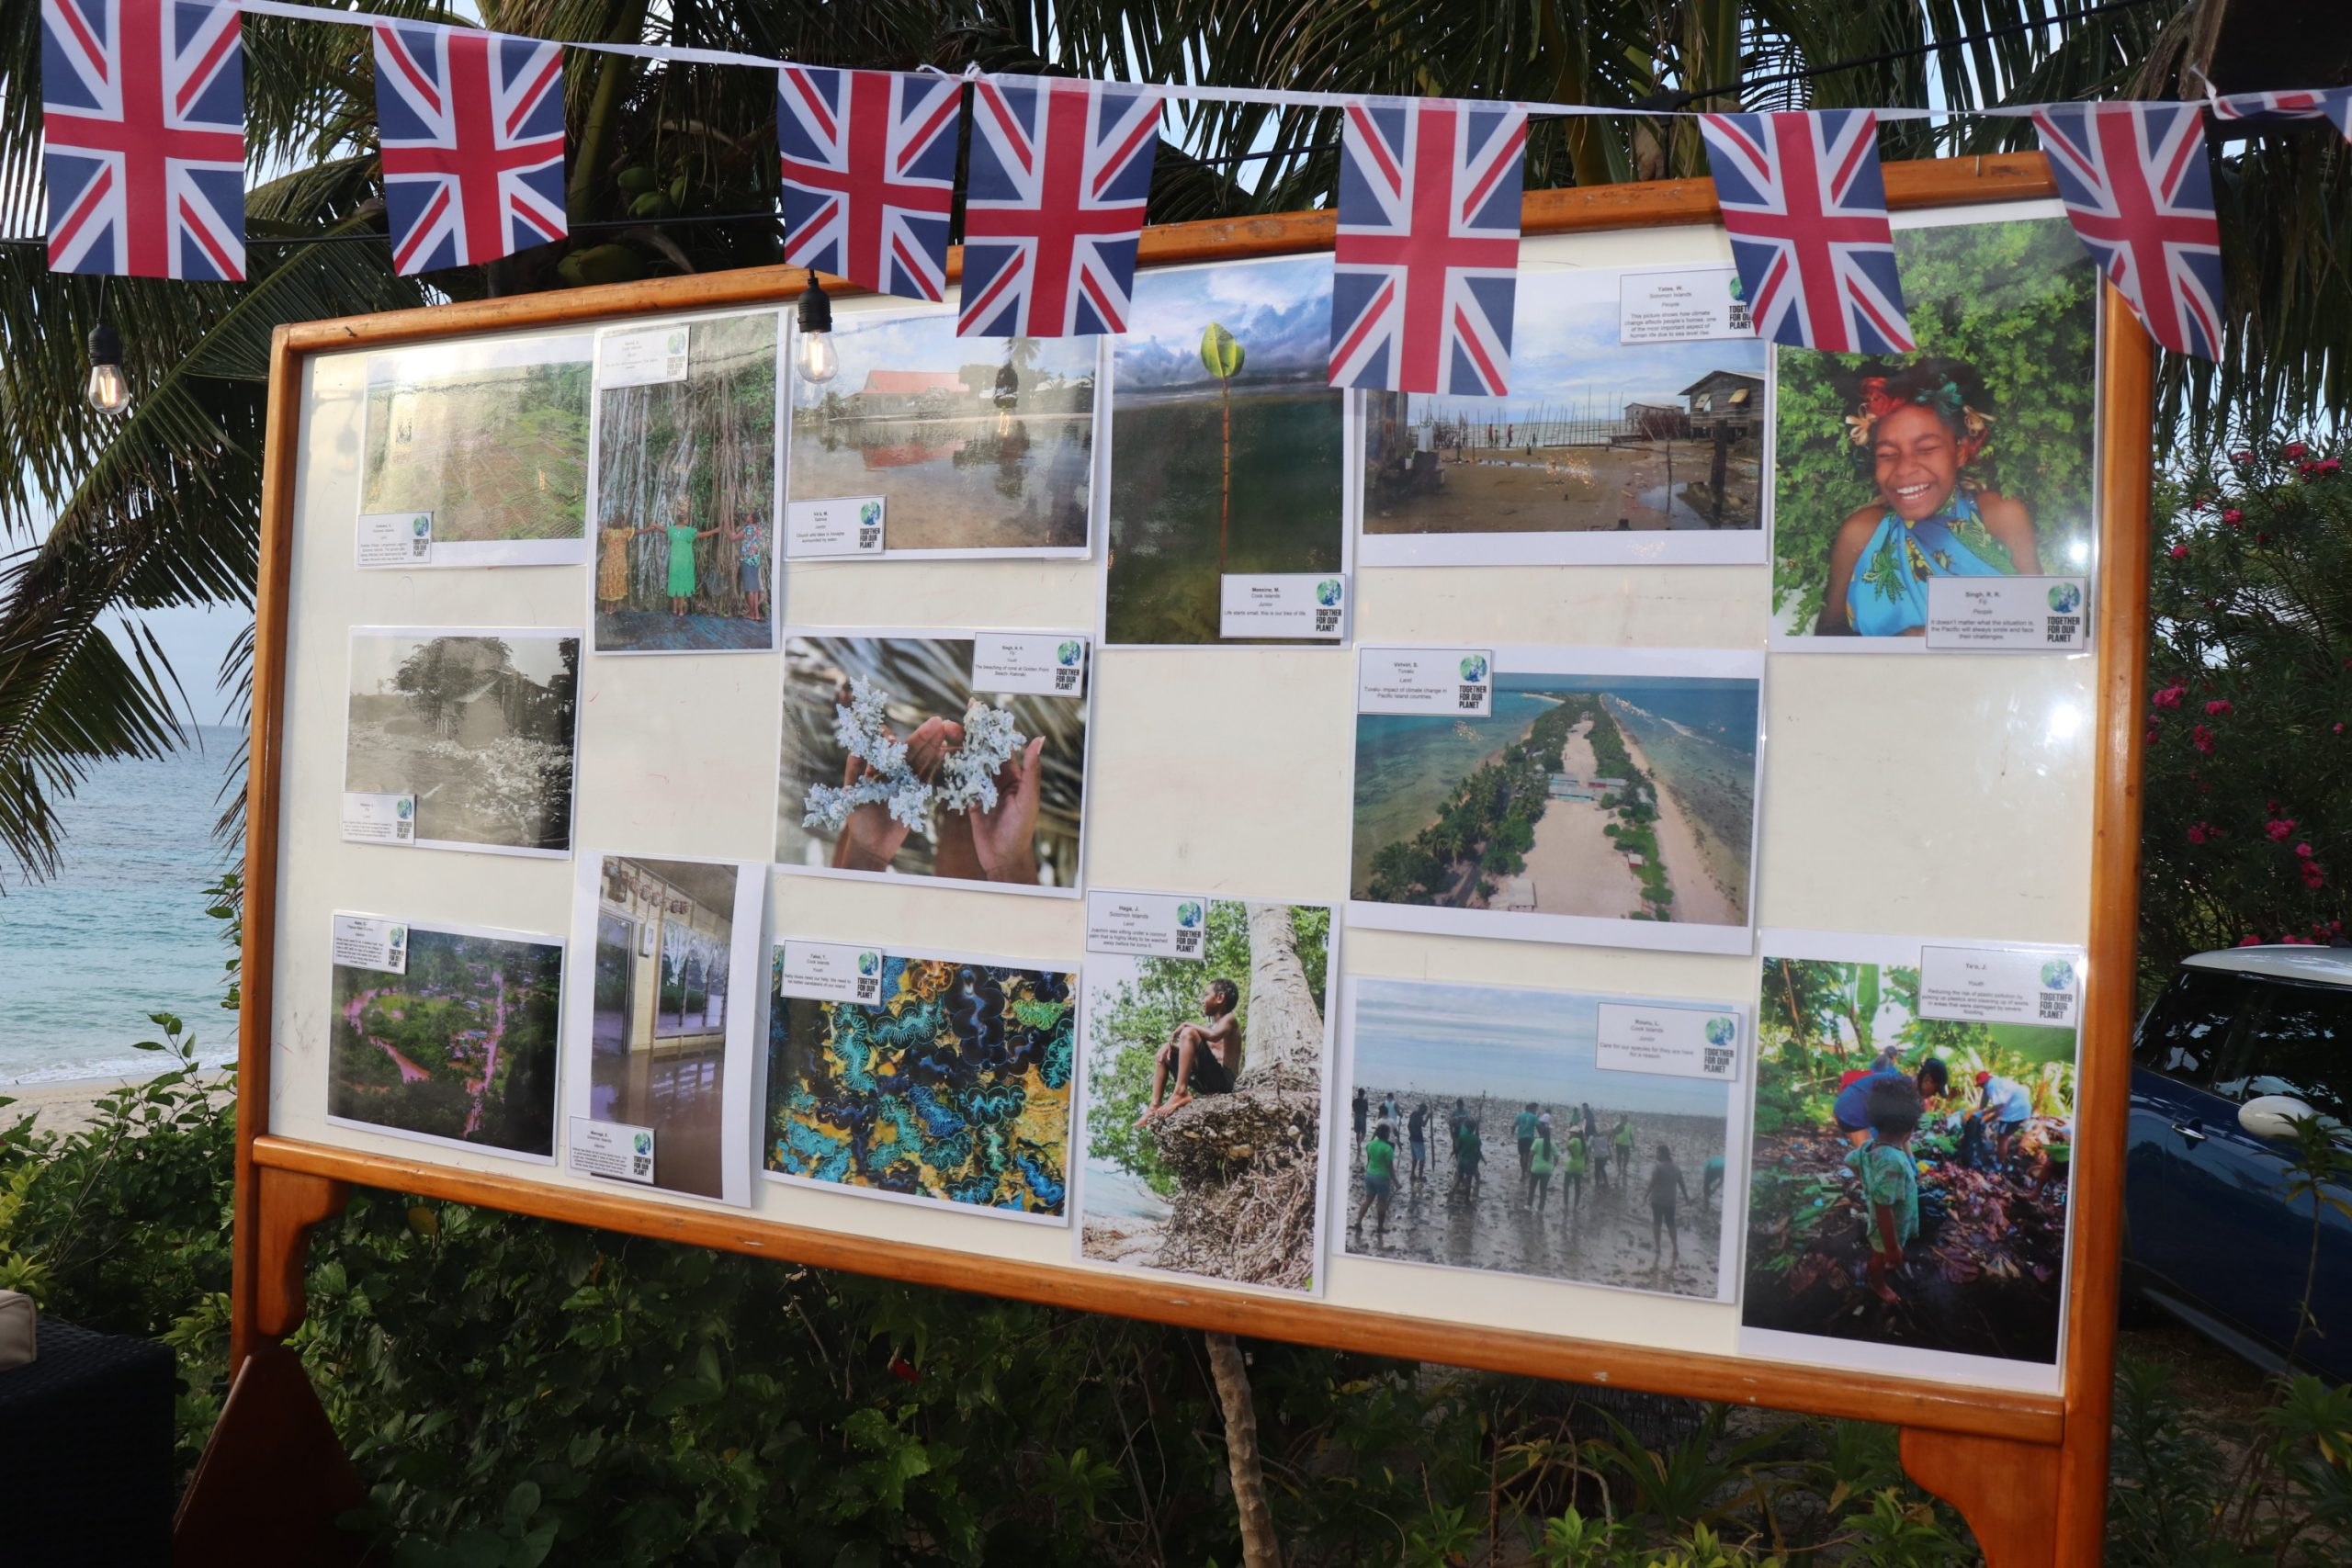 UK Photography Exhibition and Reception at Sandy Beach